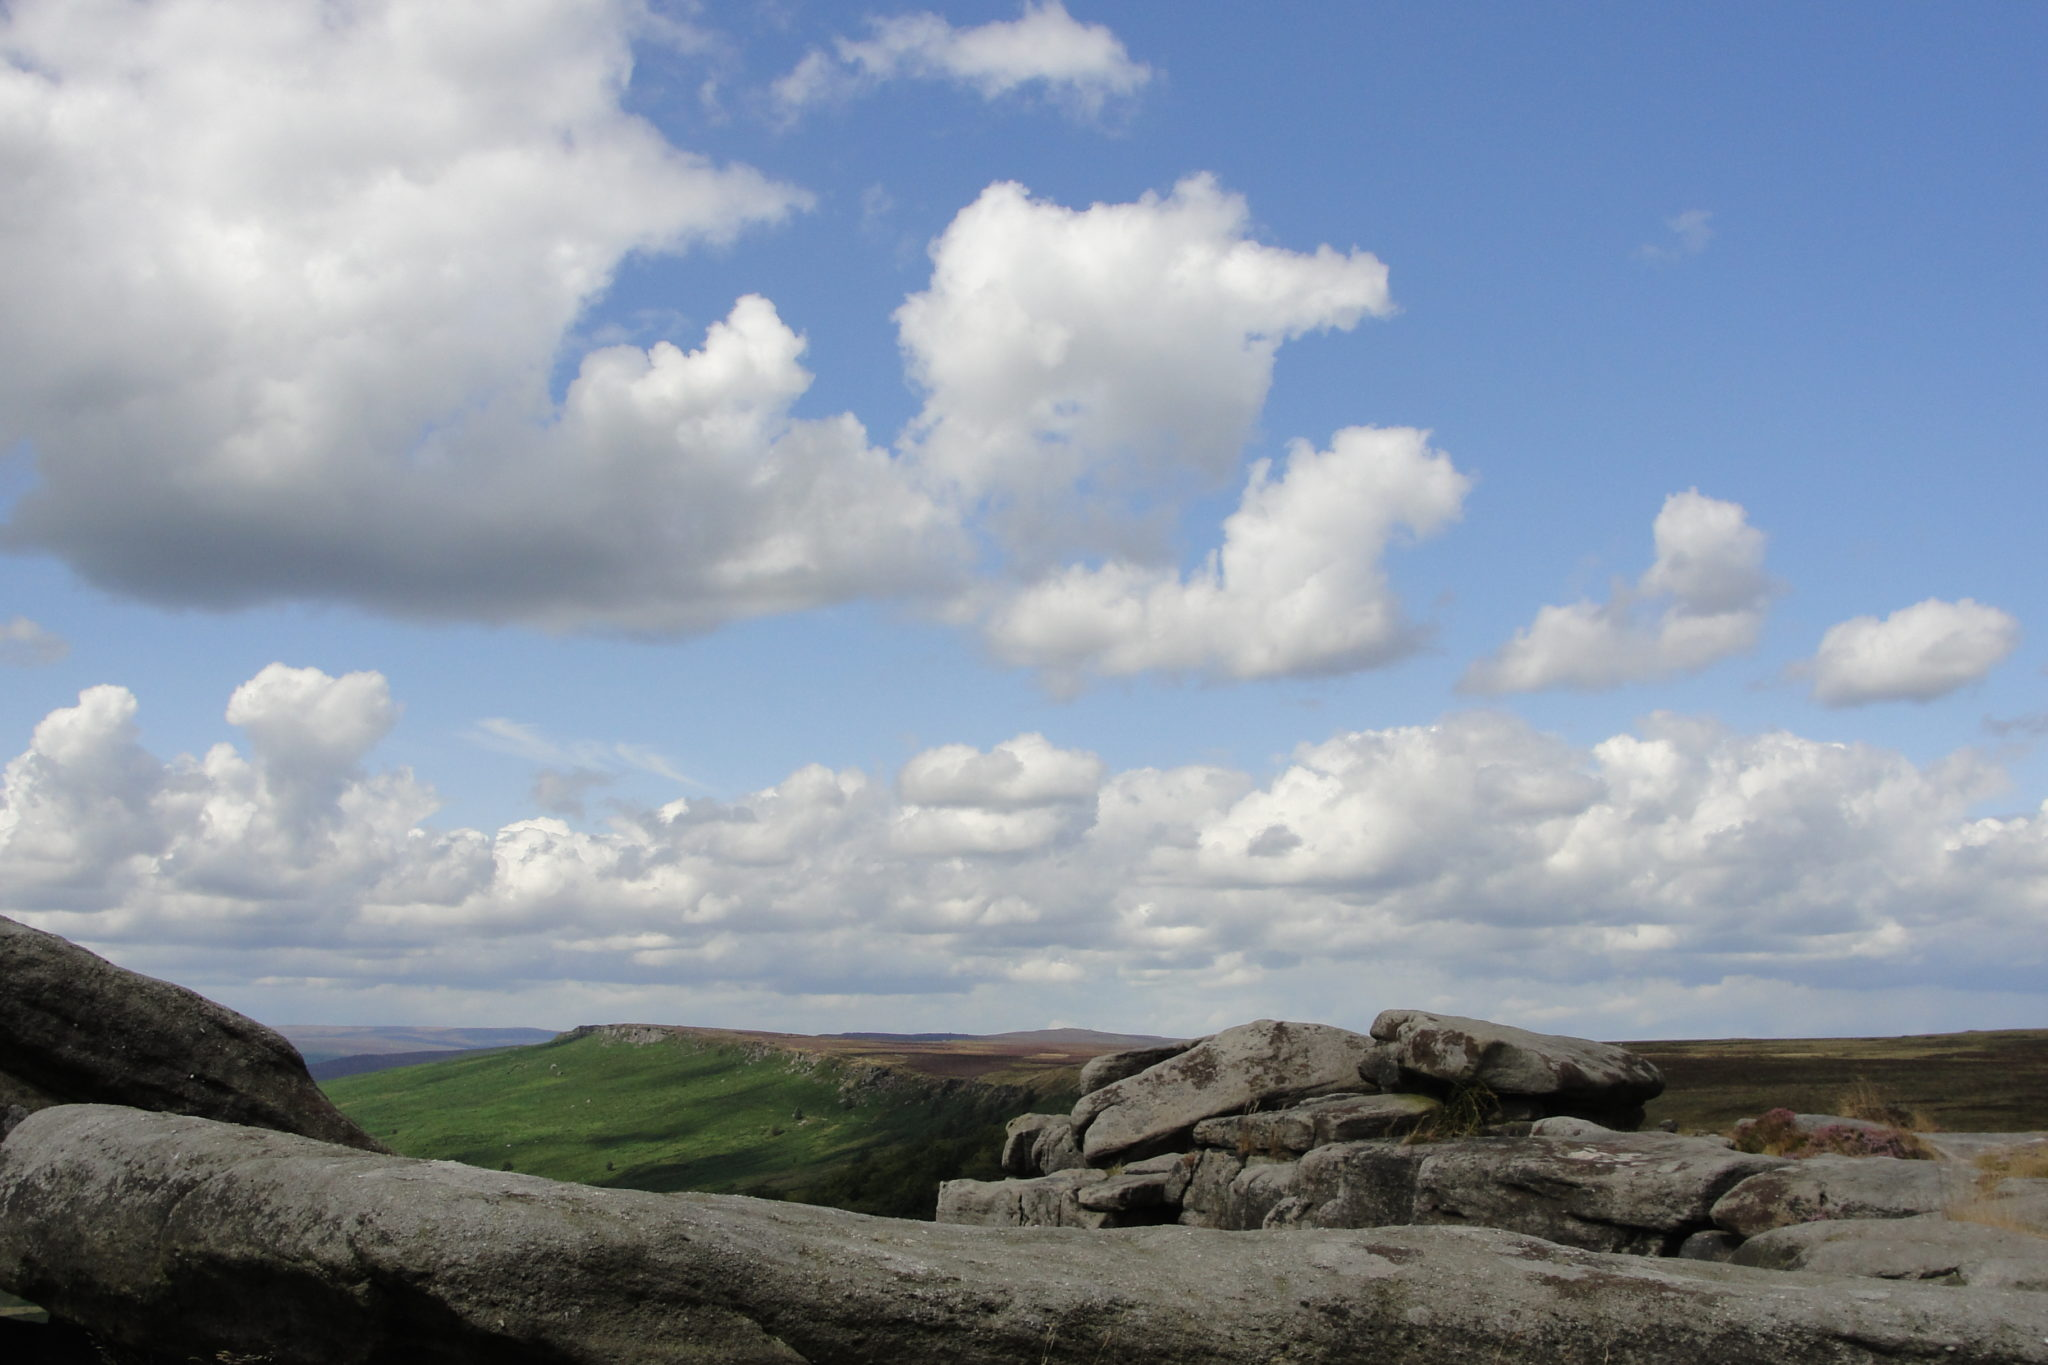 Stanage Edge in the Peak District National Park